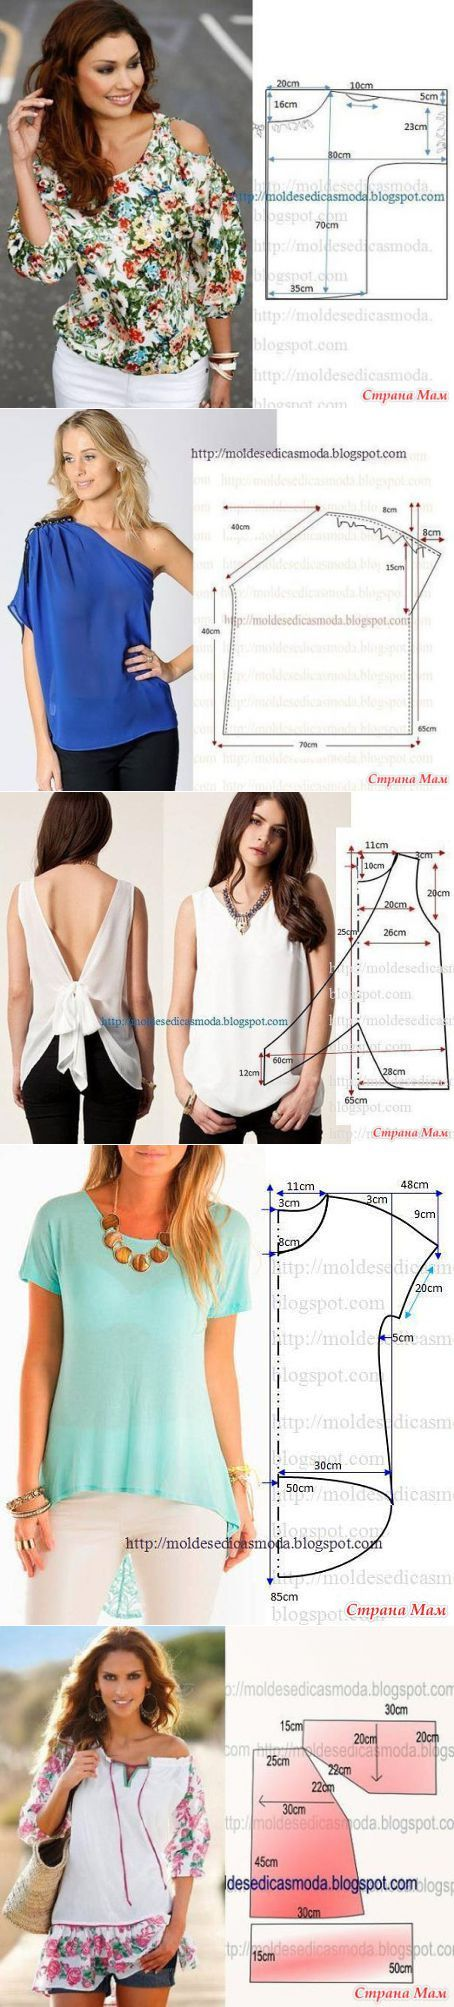 Sewing guidelines for making your own tops